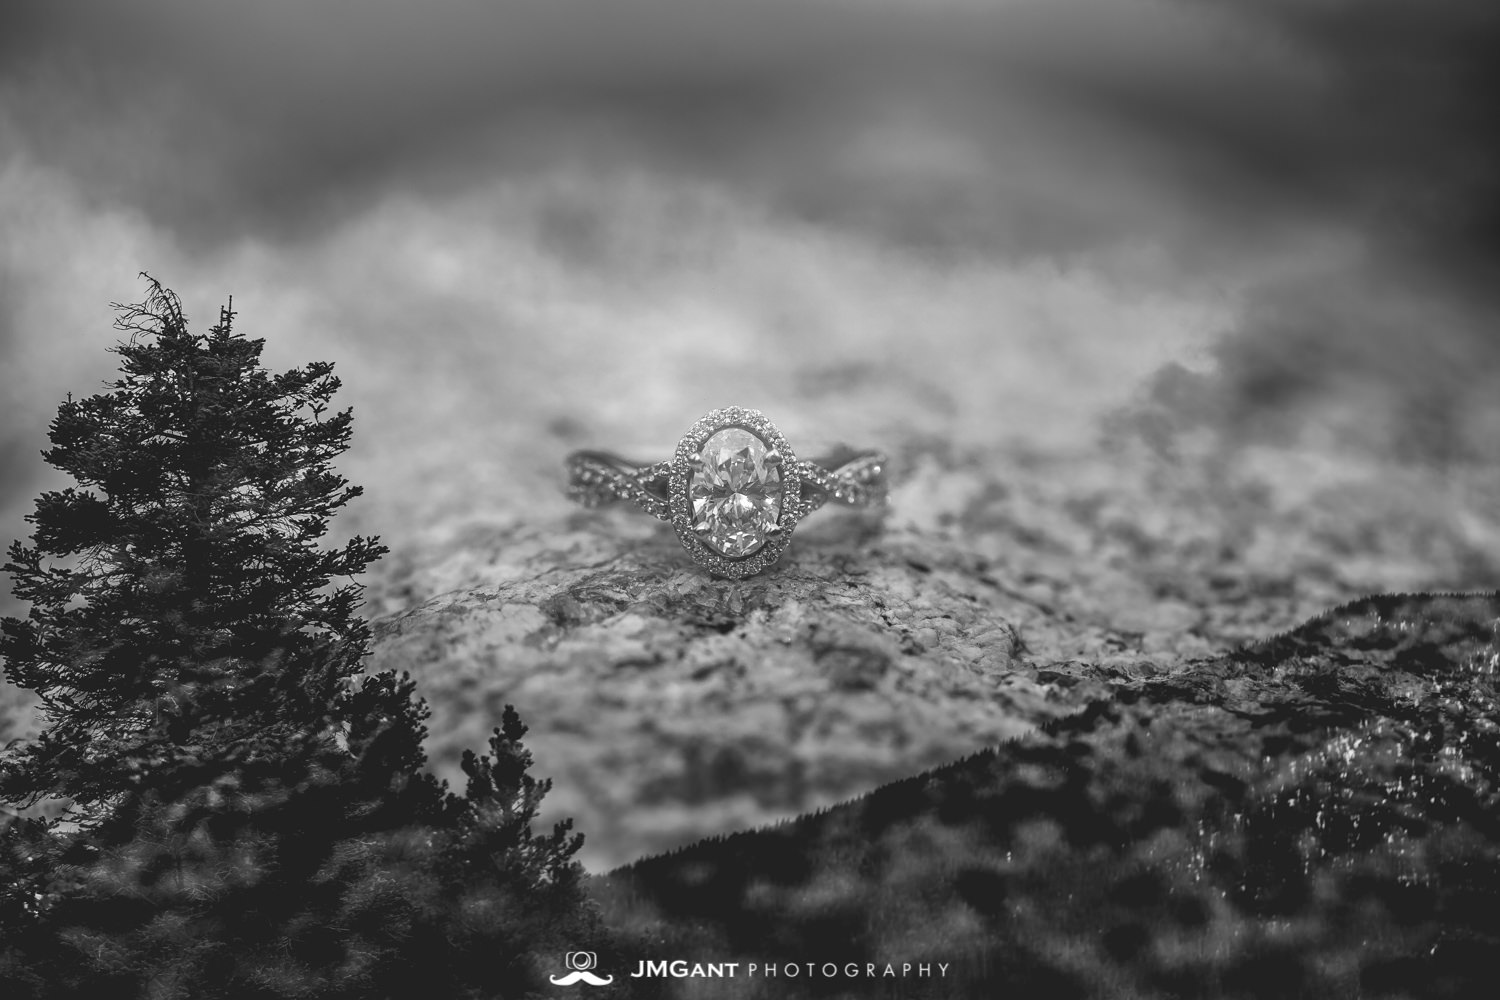 Double exposure wedding ring photo by JMGant Photography.